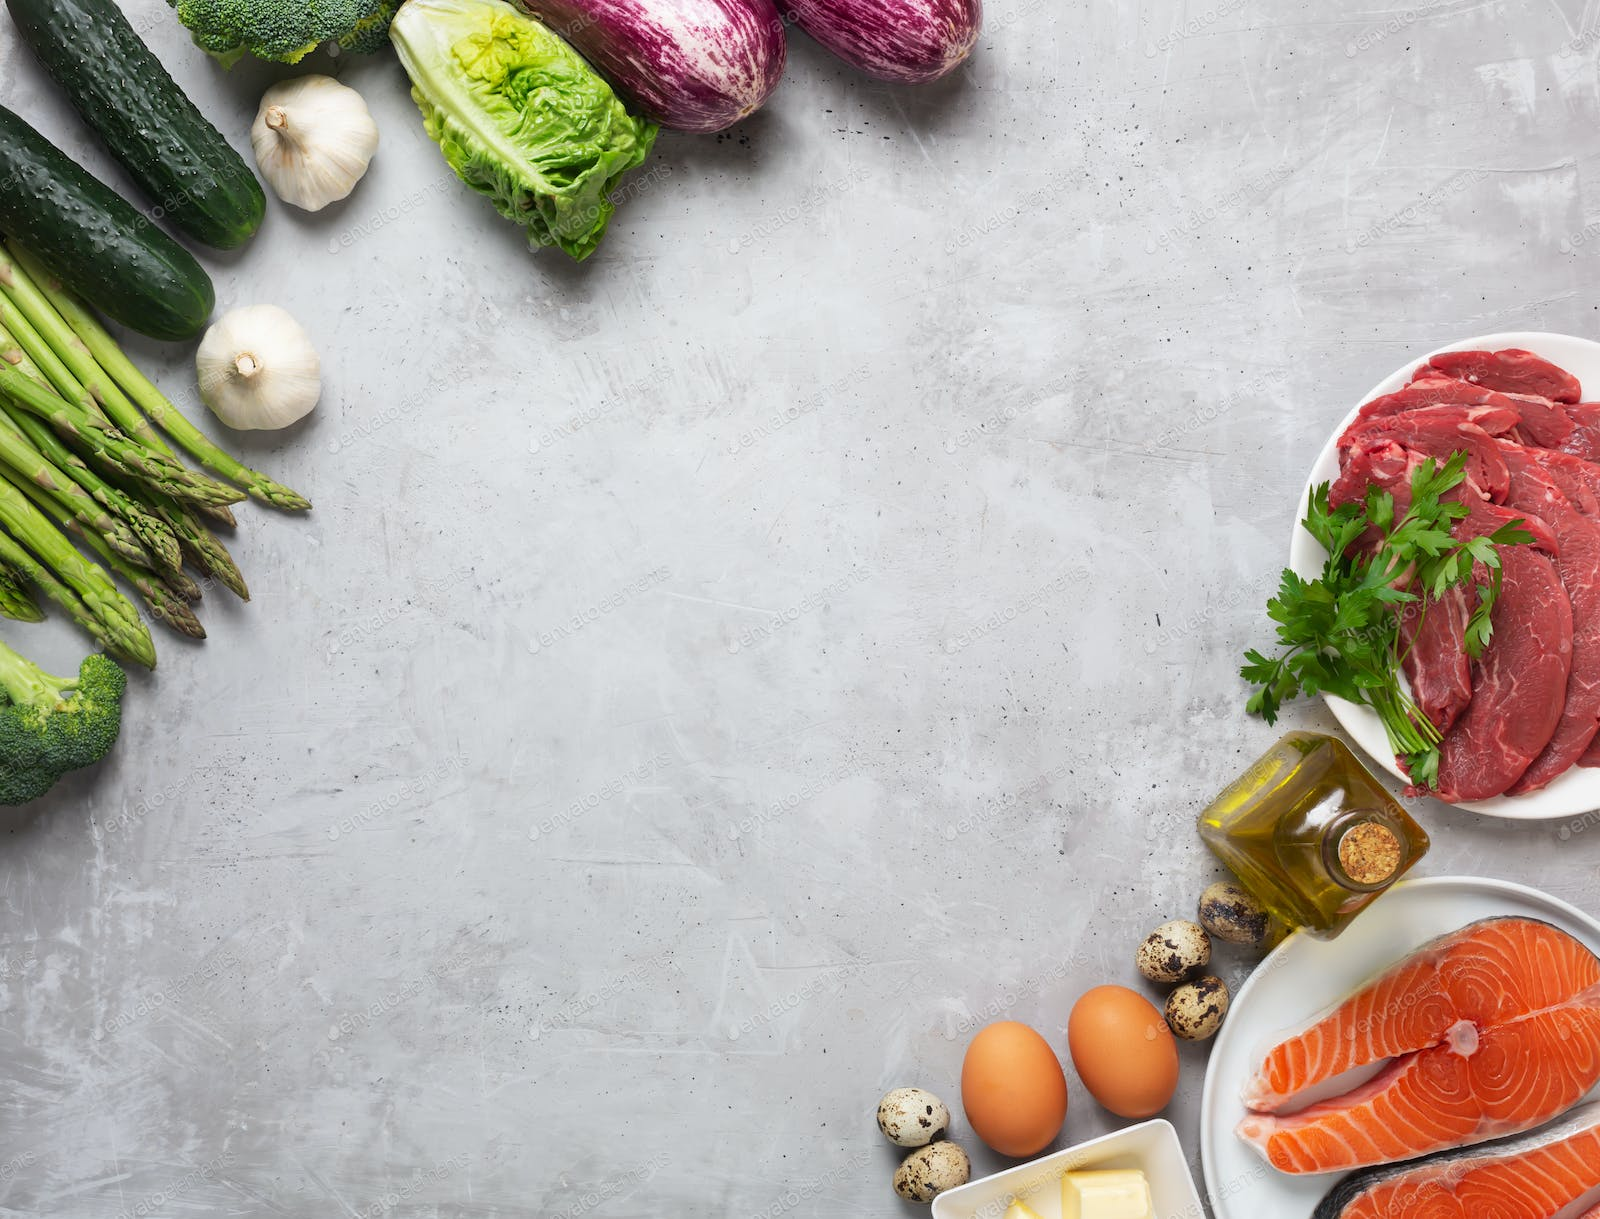 Atkins Diet Food Ingredients On Concrete Background Health Concept Top View With Copy Space Photo By Civil On Envato Elements